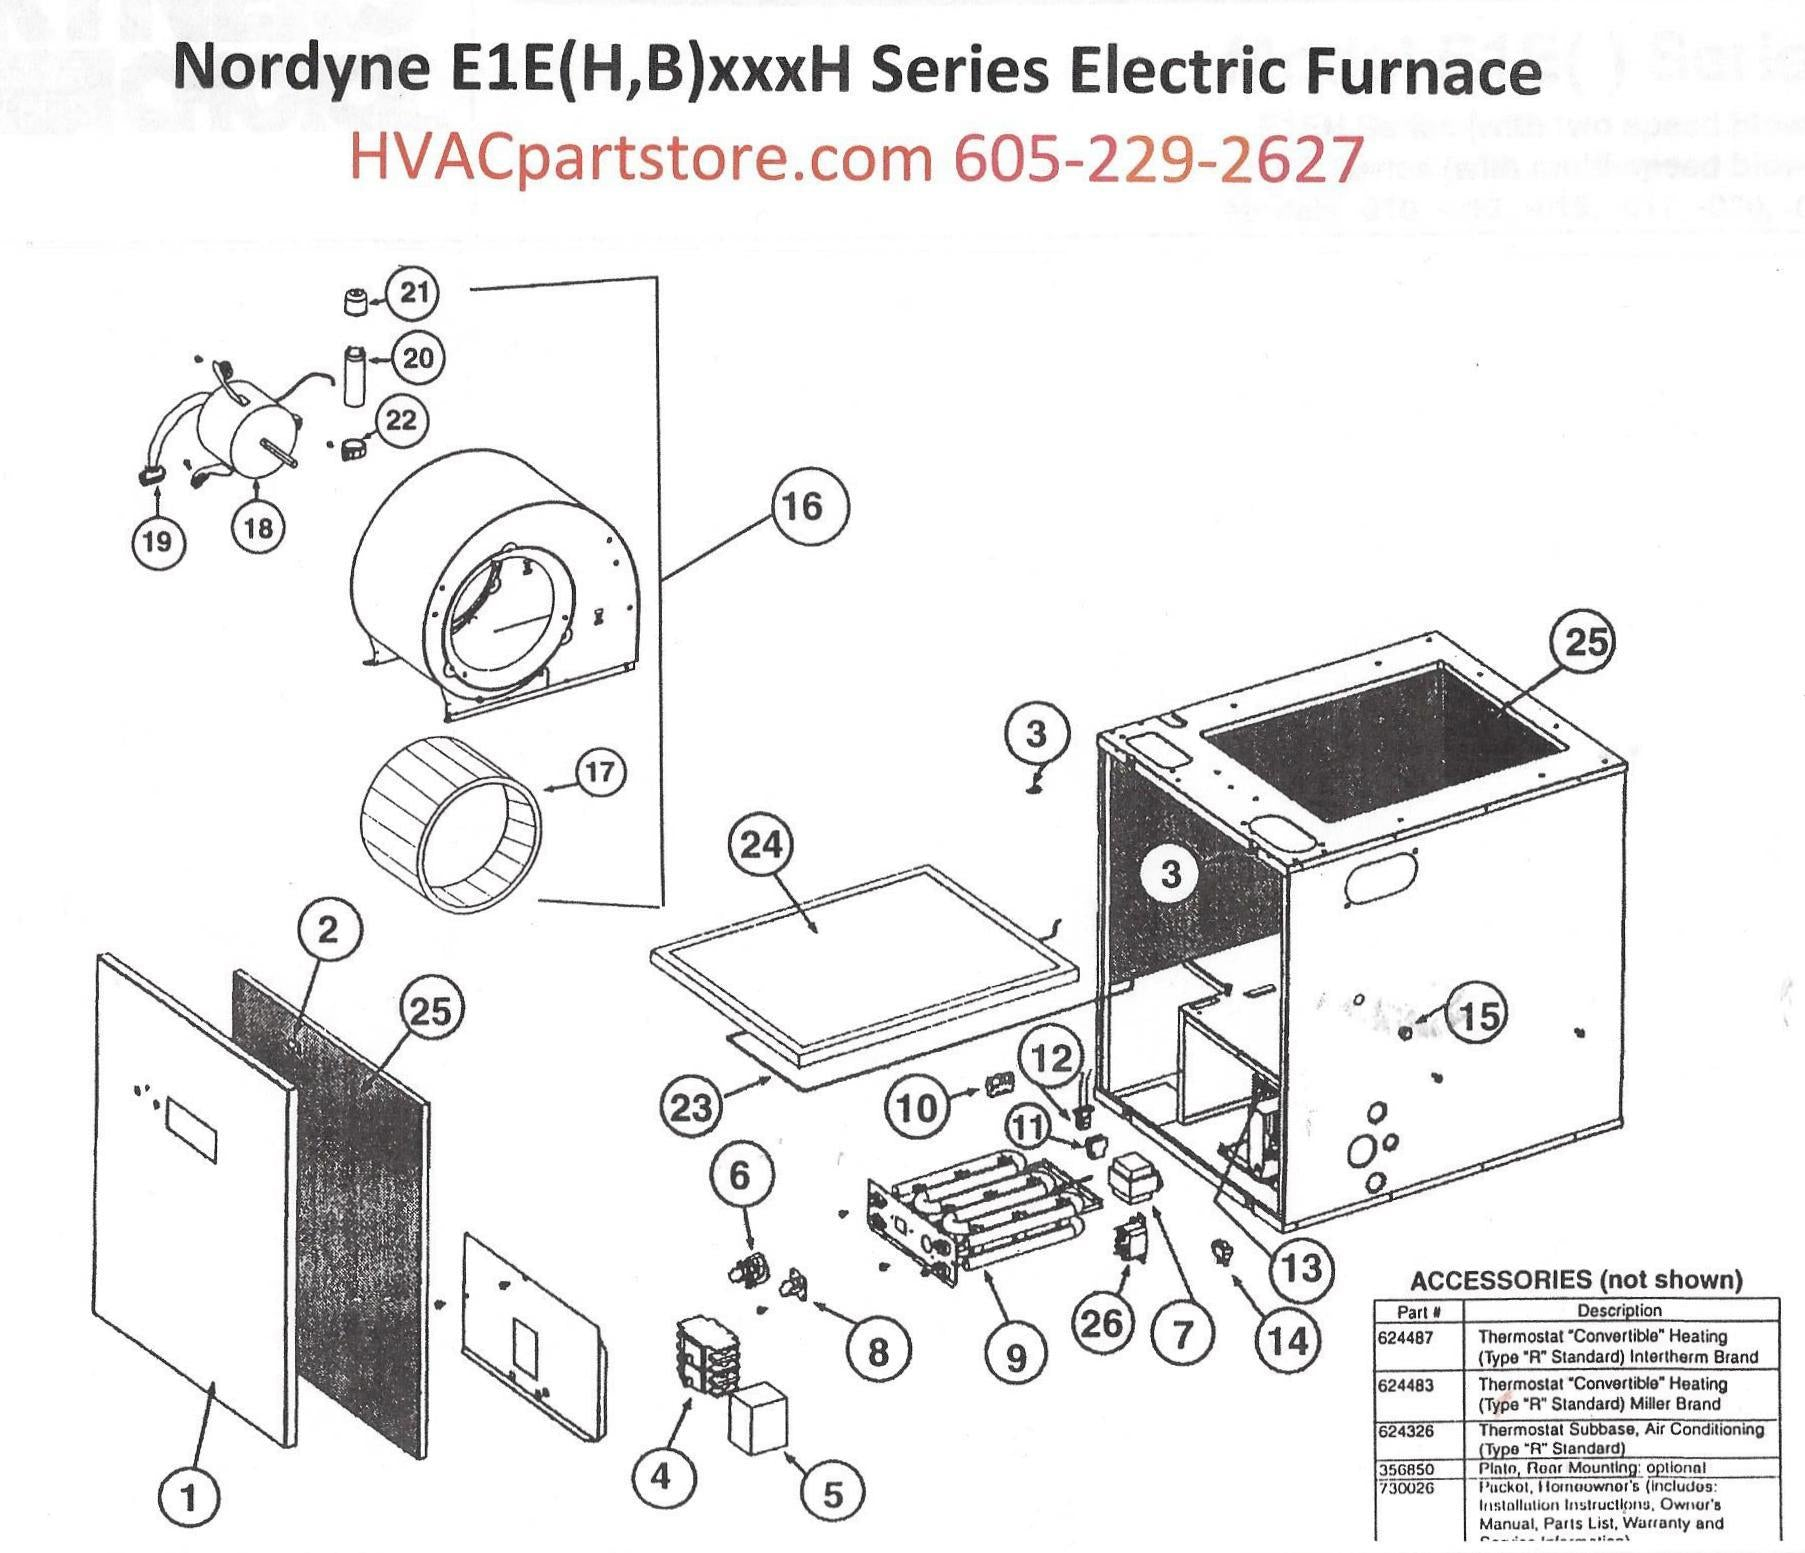 e1eh020h nordyne electric furnace parts hvacpartstore Nordyne Furnace Wiring Diagram at Nordyne Motors Wiring Diagram Manuel Pdf